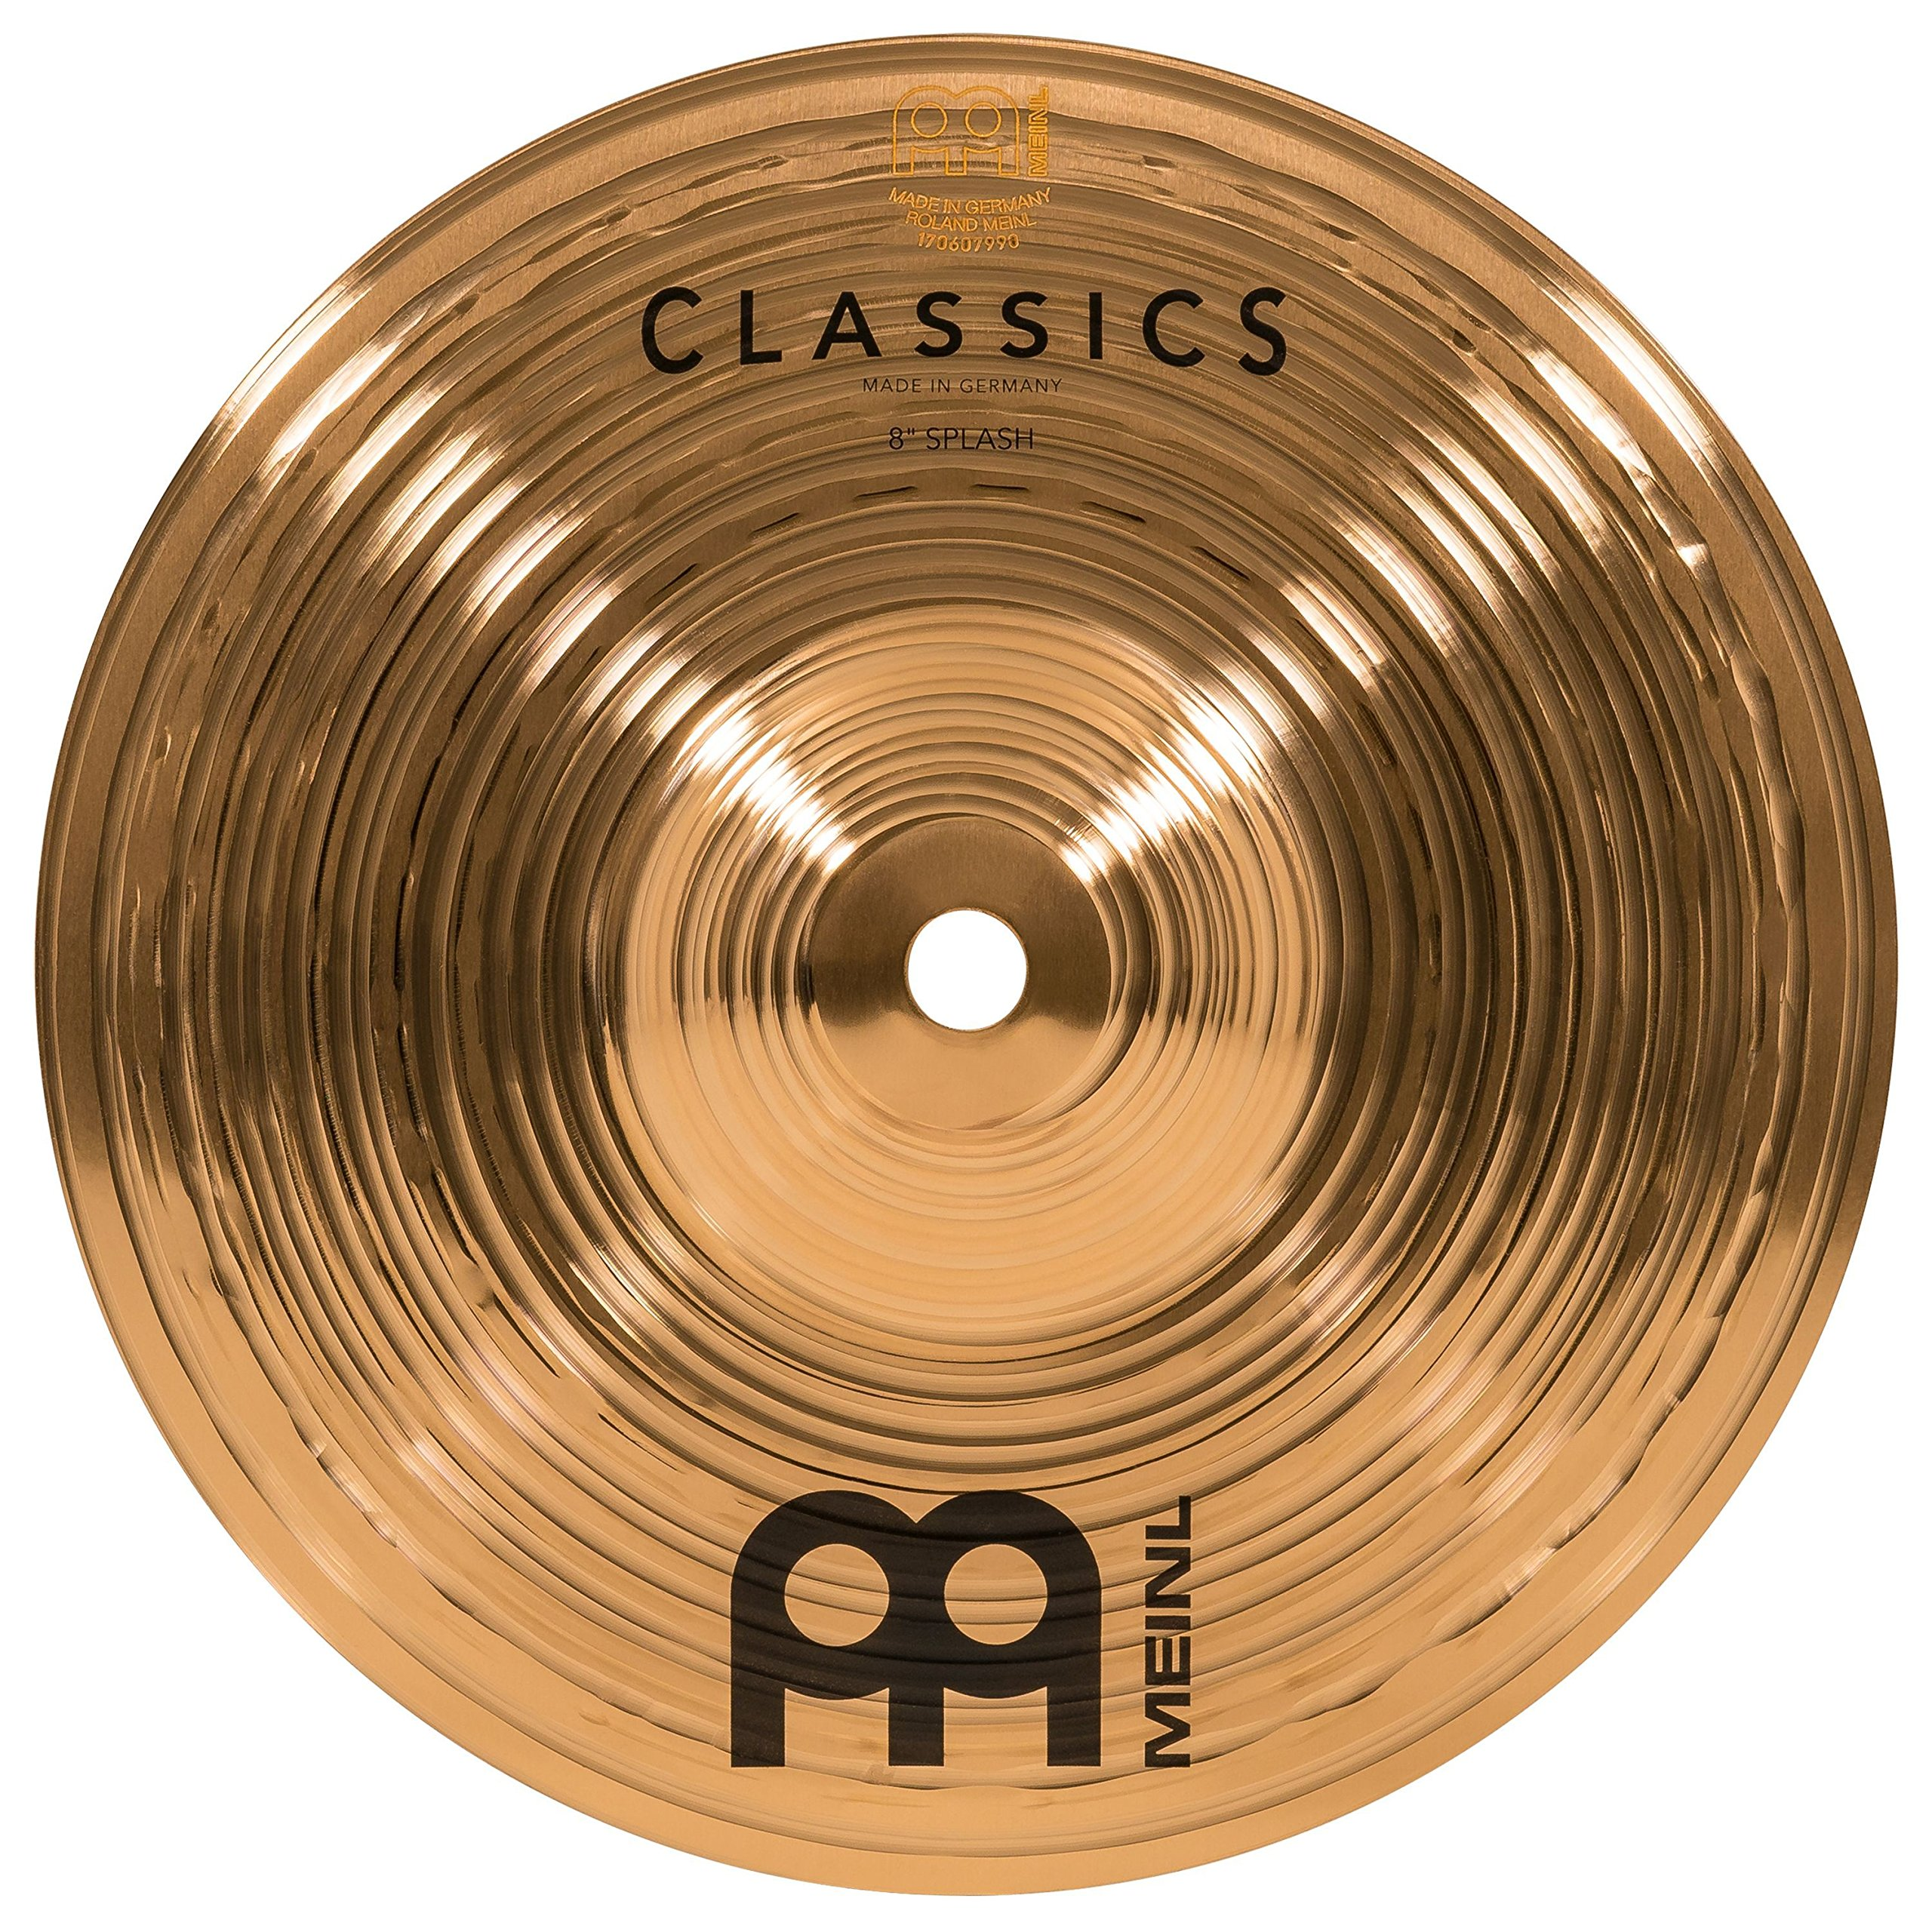 Meinl 8'' Splash Cymbal - Classics Traditional - Made in Germany, 2-YEAR WARRANTY (C8S)